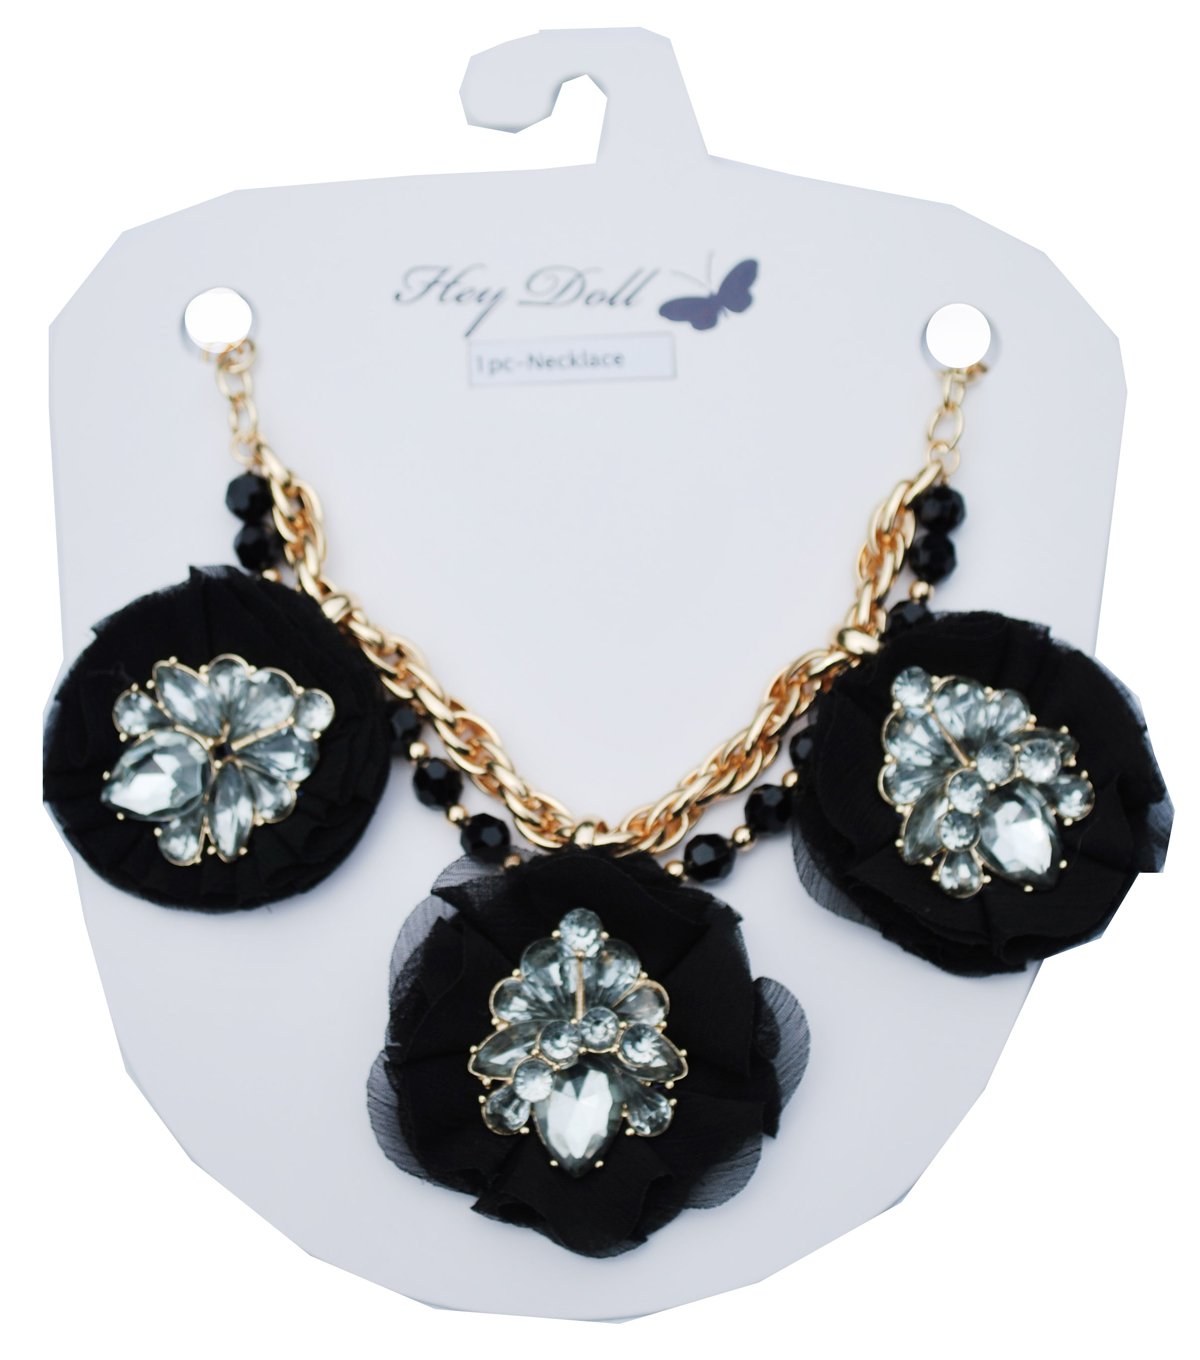 Hey Doll Triple Fabric Flower Statement Necklace